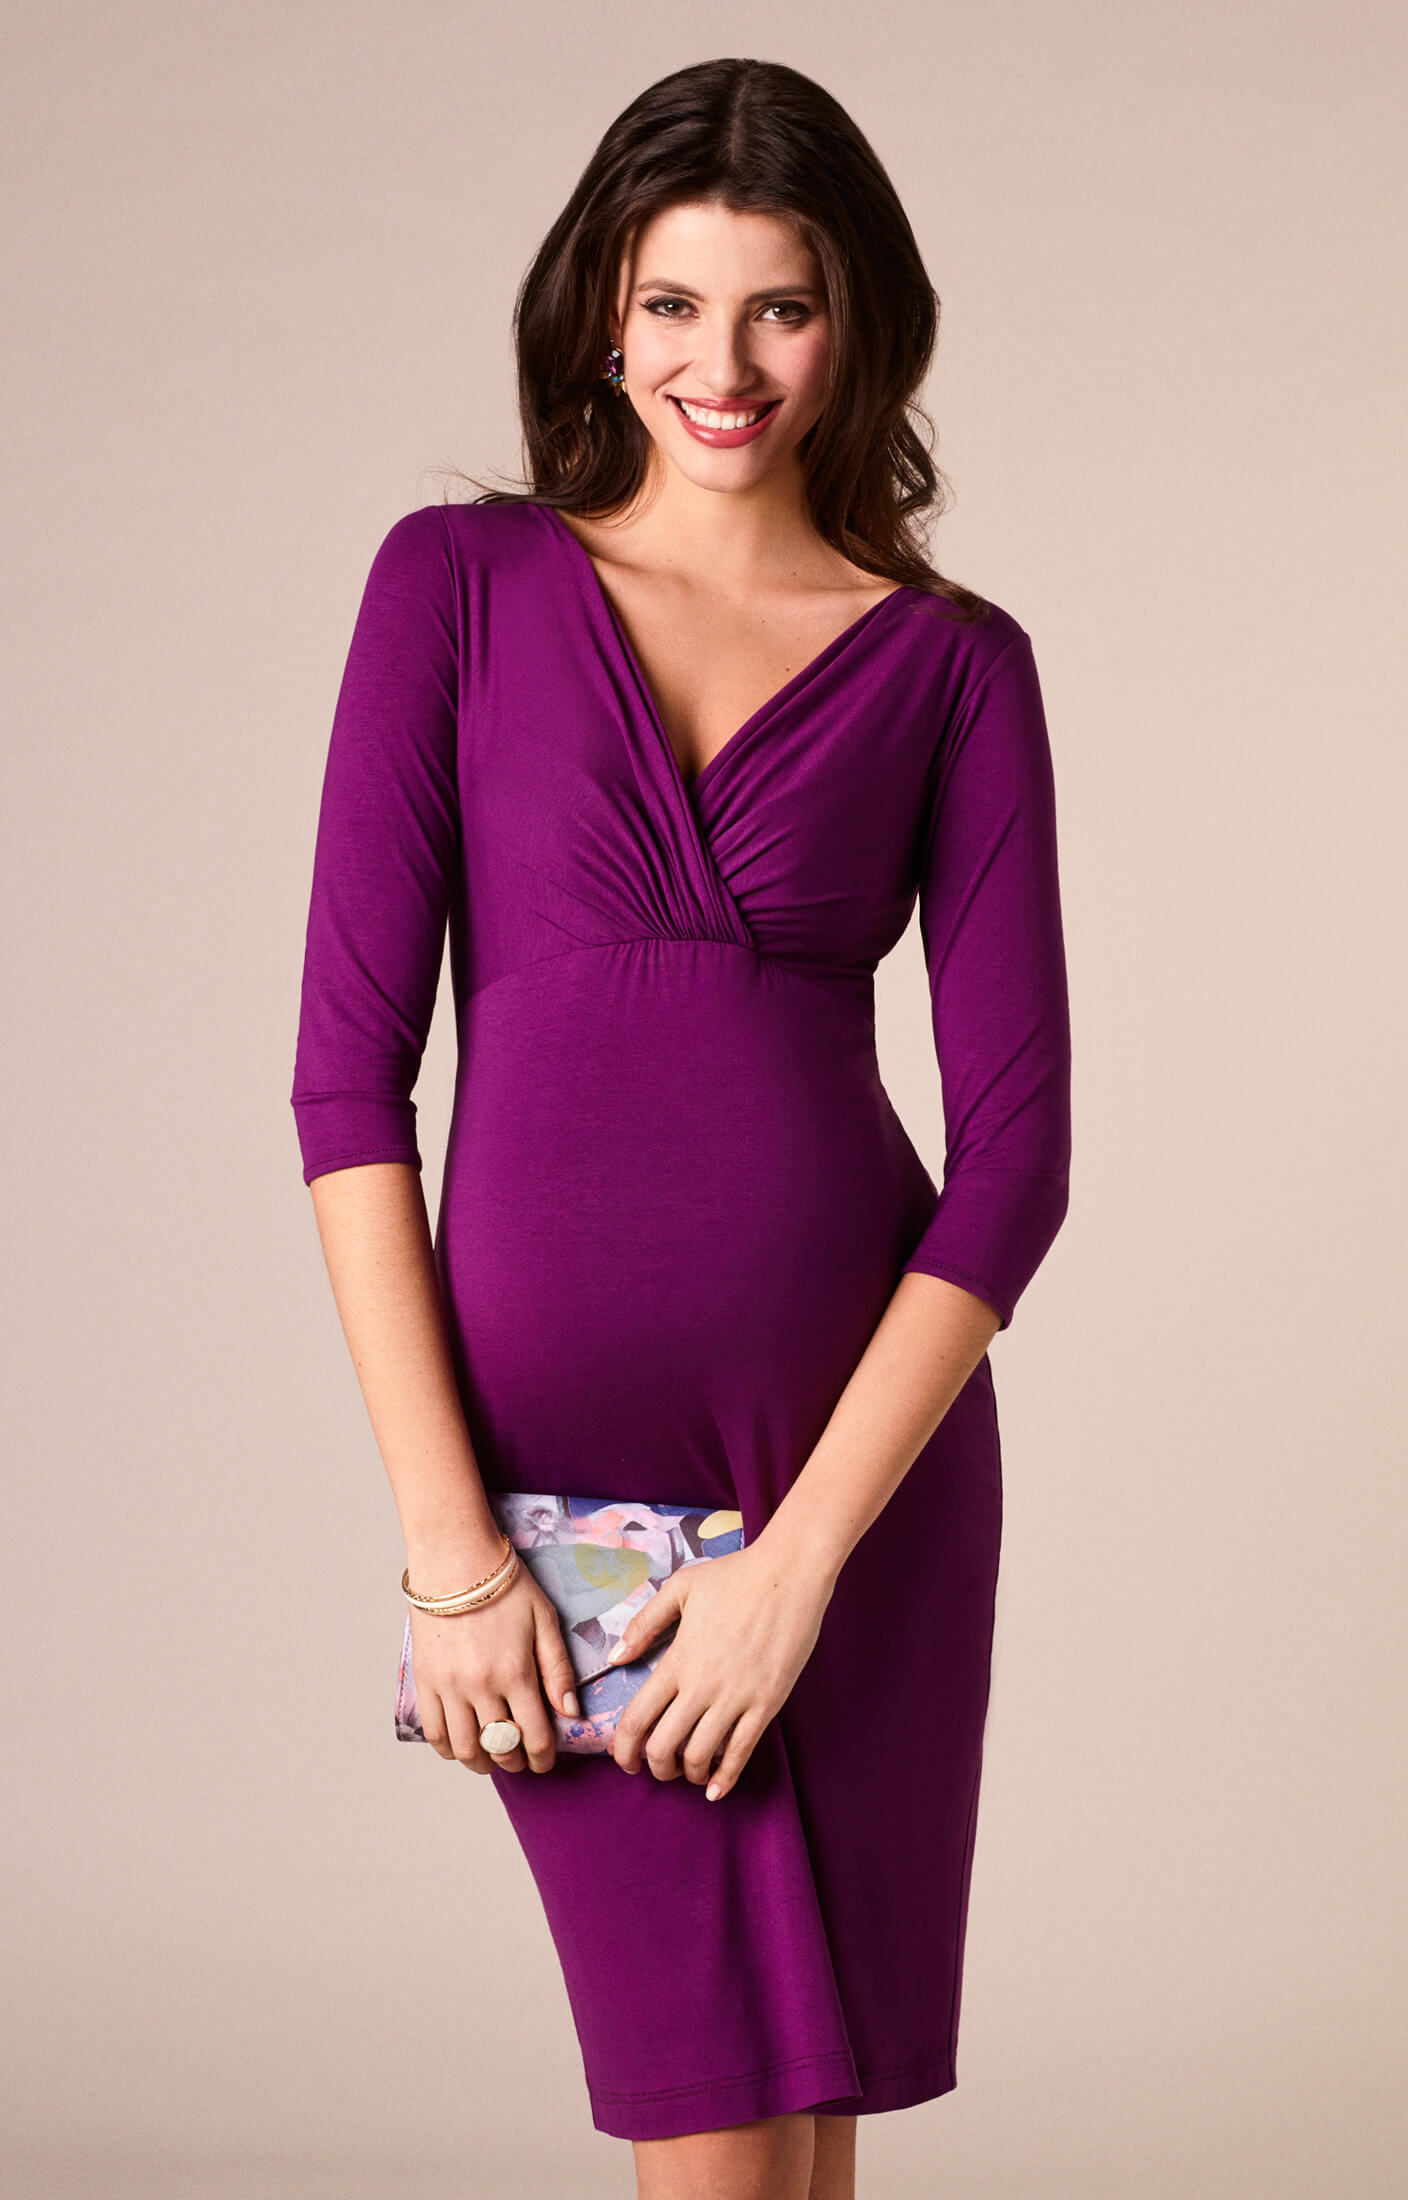 The best women's maternity clothes are the ones that don't look like maternity clothes at all! Today's mama wants maternity wear that feels as good as it looks. Think maternity tights that sit over the belly, comfy gym t-shirts and practical maternity bras, crops and singlets.